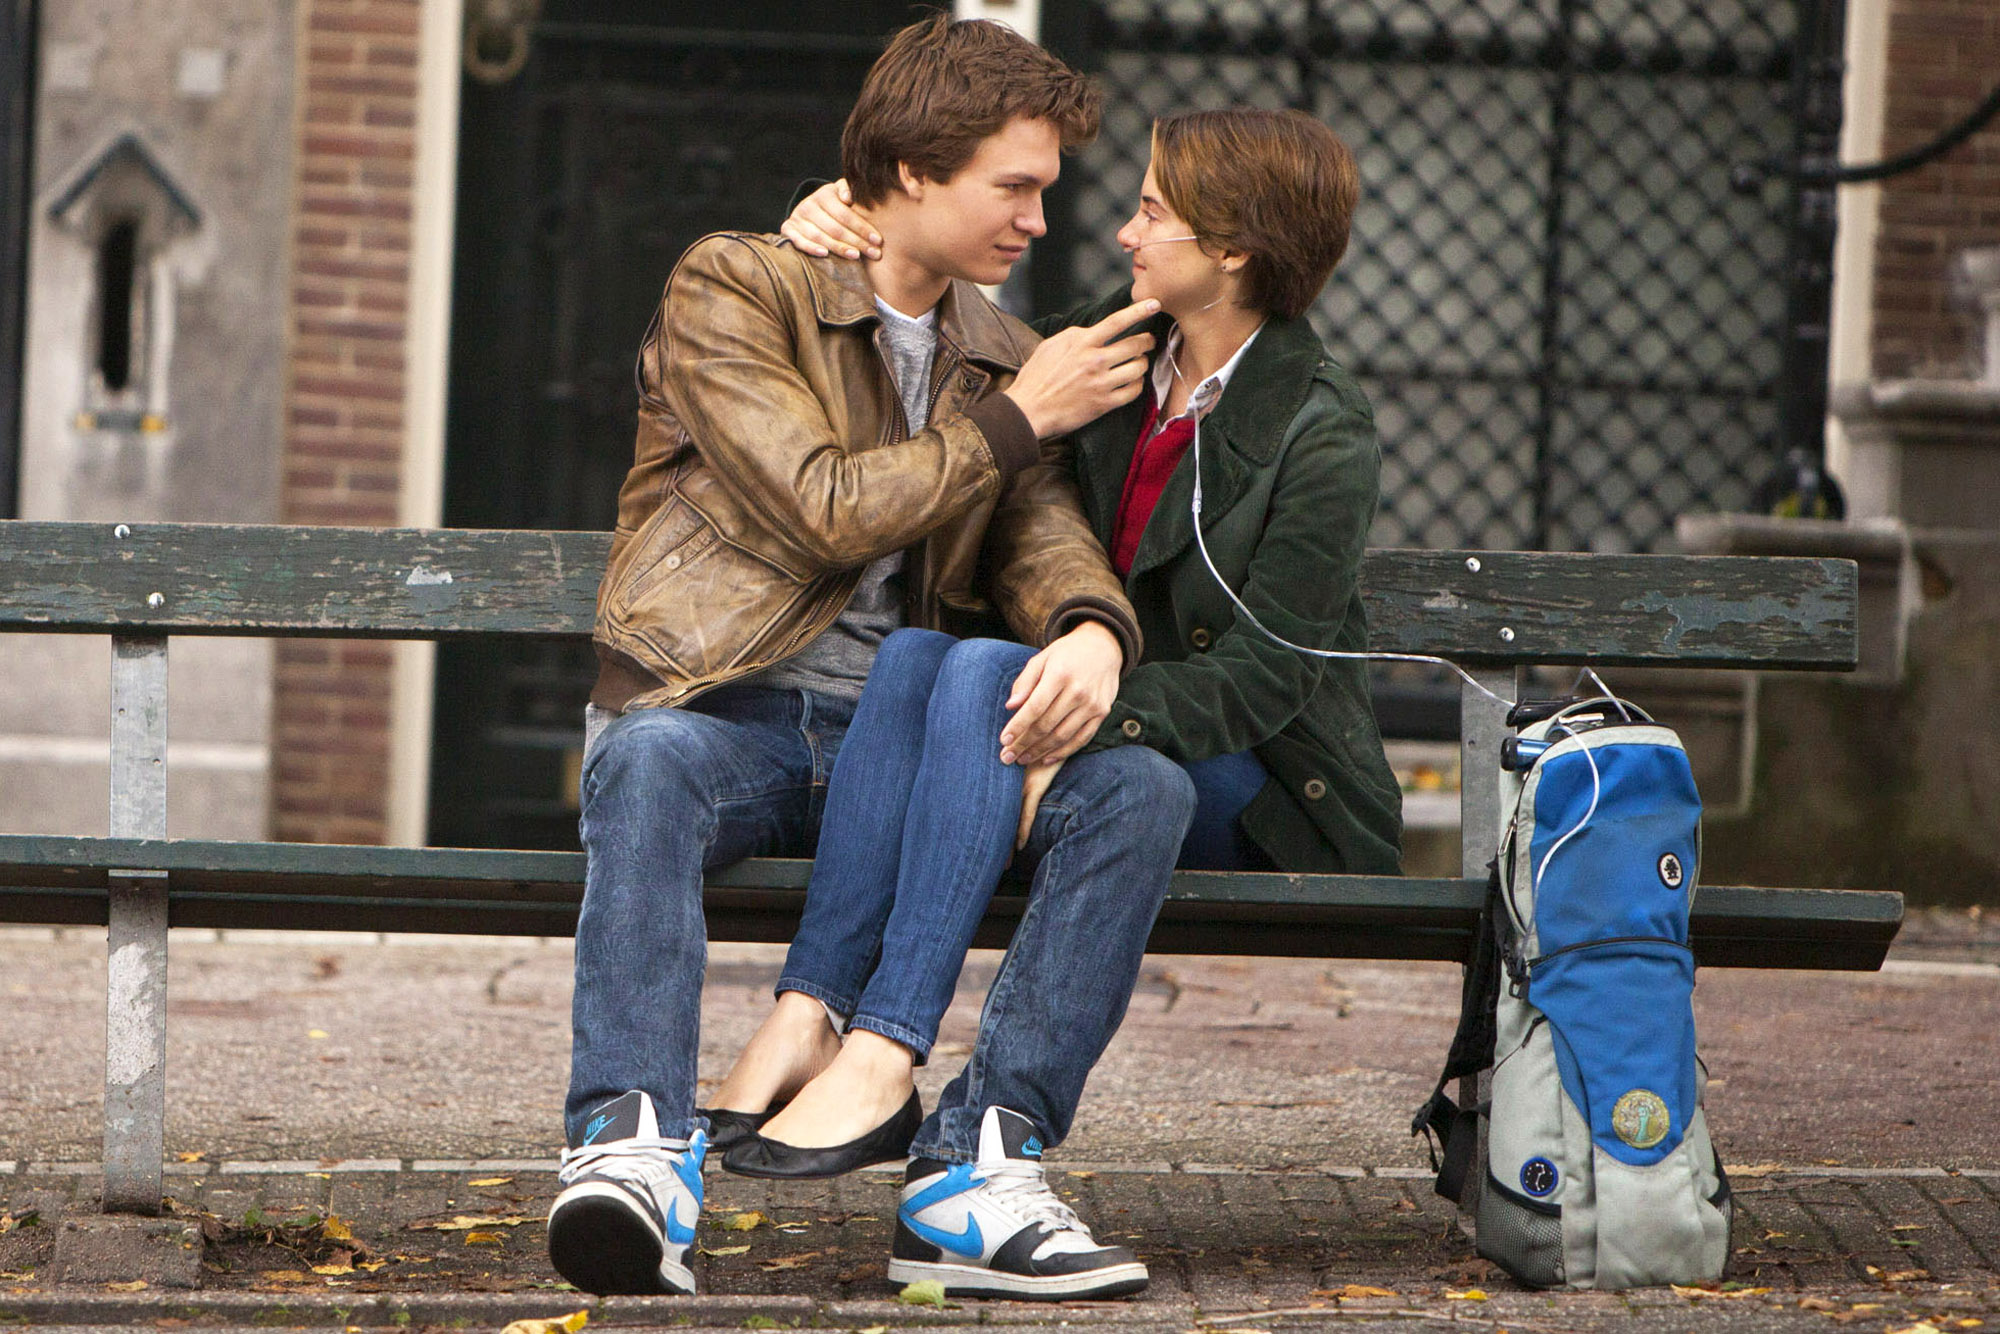 This image released by 20th Century Fox shows Ansel Elgort, left, and Shailene Woodley appear in a scene from  The Fault In Our Stars.  (AP Photo/20th Century Fox, James Bridges)